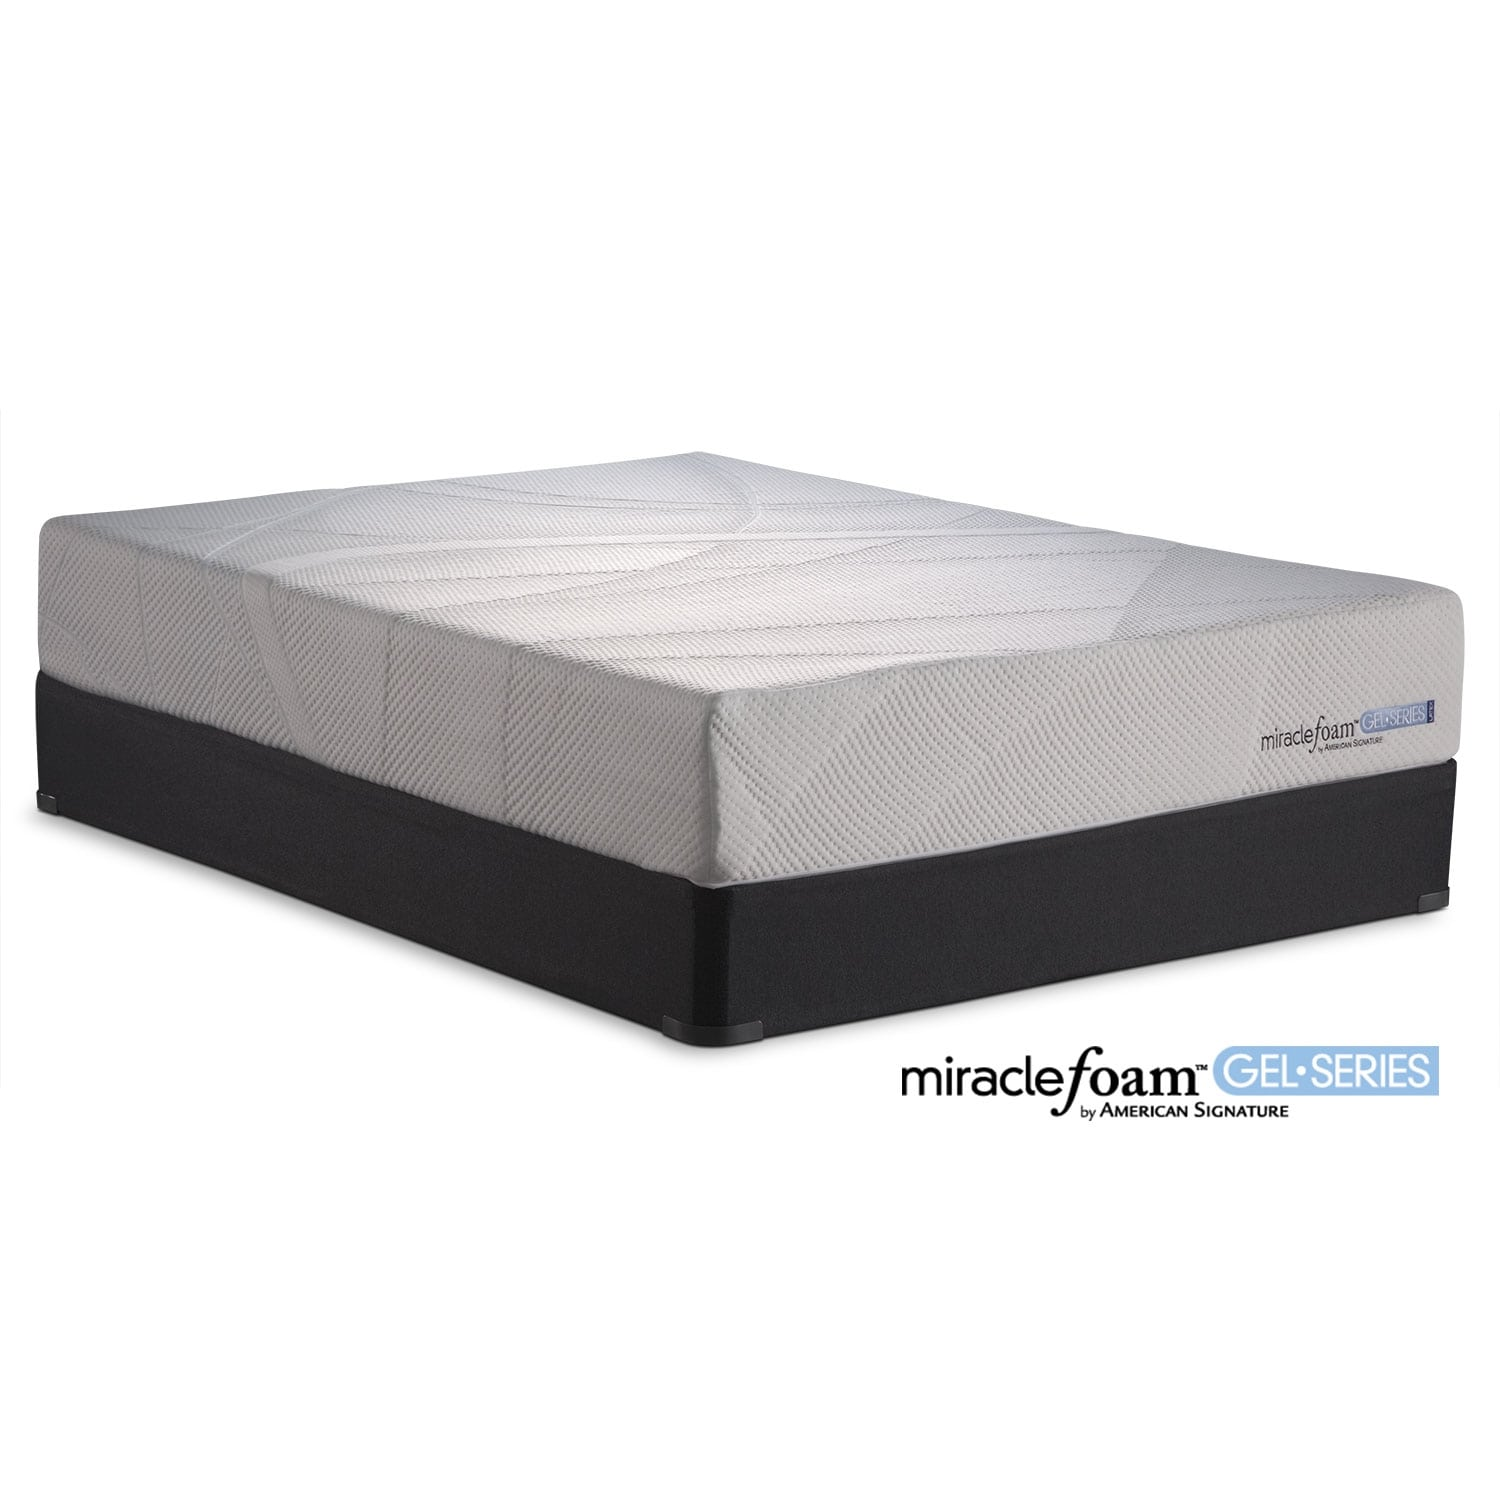 Mattresses and Bedding - Invigorate II Full Mattress and Foundation Set